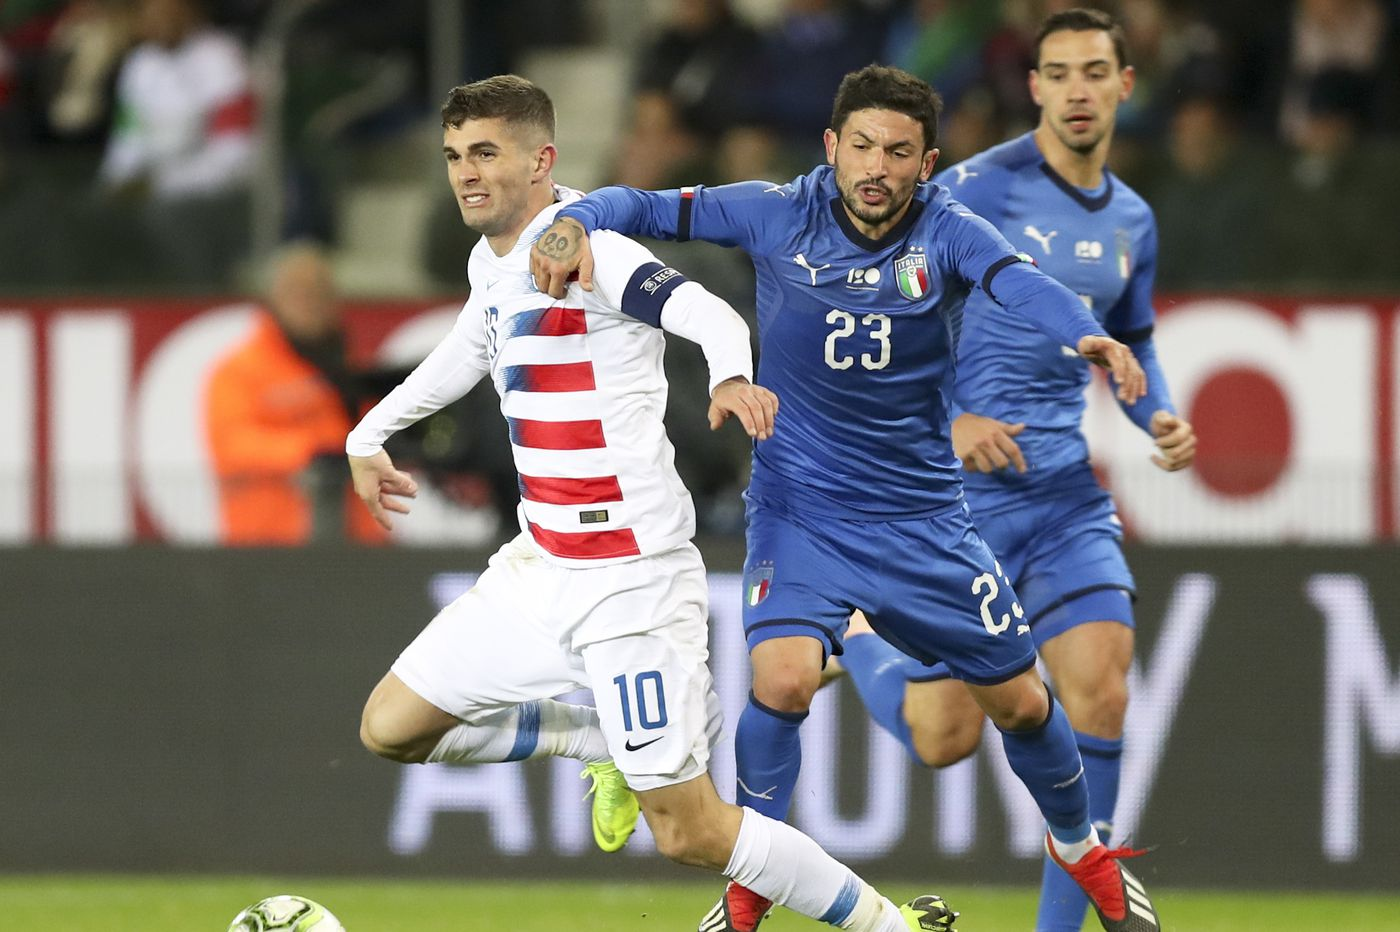 U.S. men lose to Italy in Sarachan's final game as coach; Pulisic serves as captain